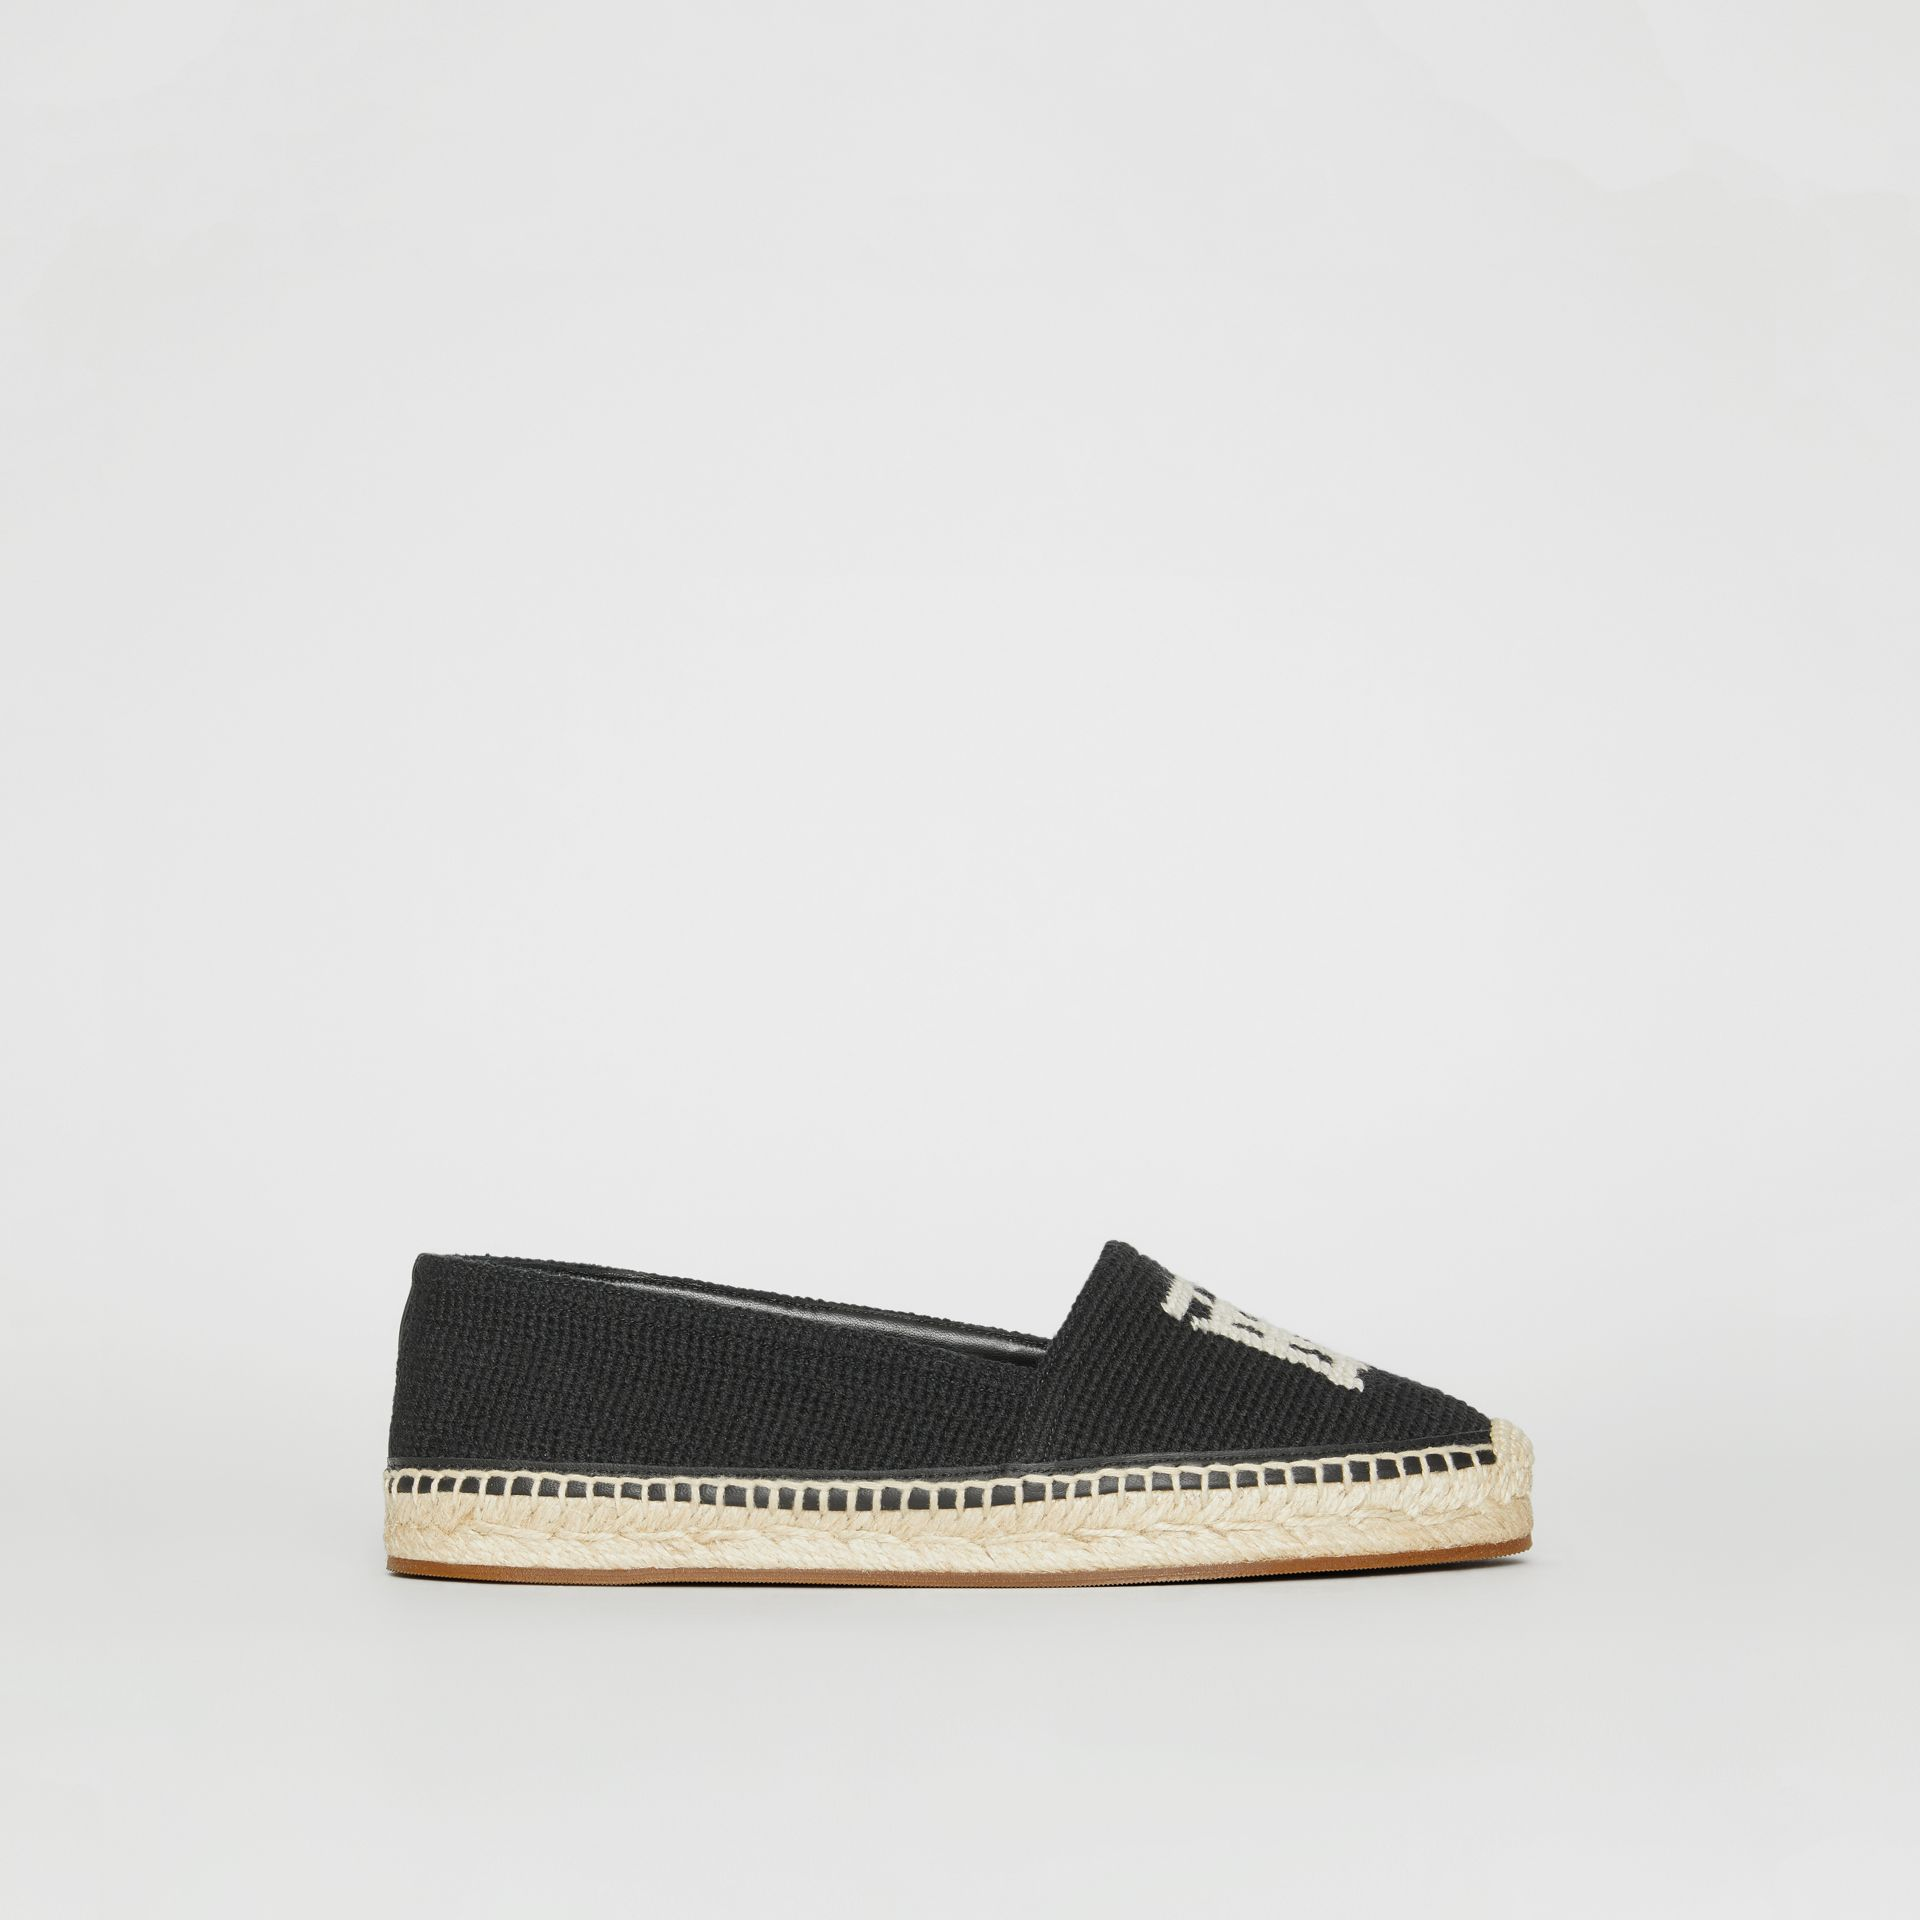 Monogram Motif Cotton and Leather Espadrilles in Black/ecru - Women | Burberry Australia - gallery image 5